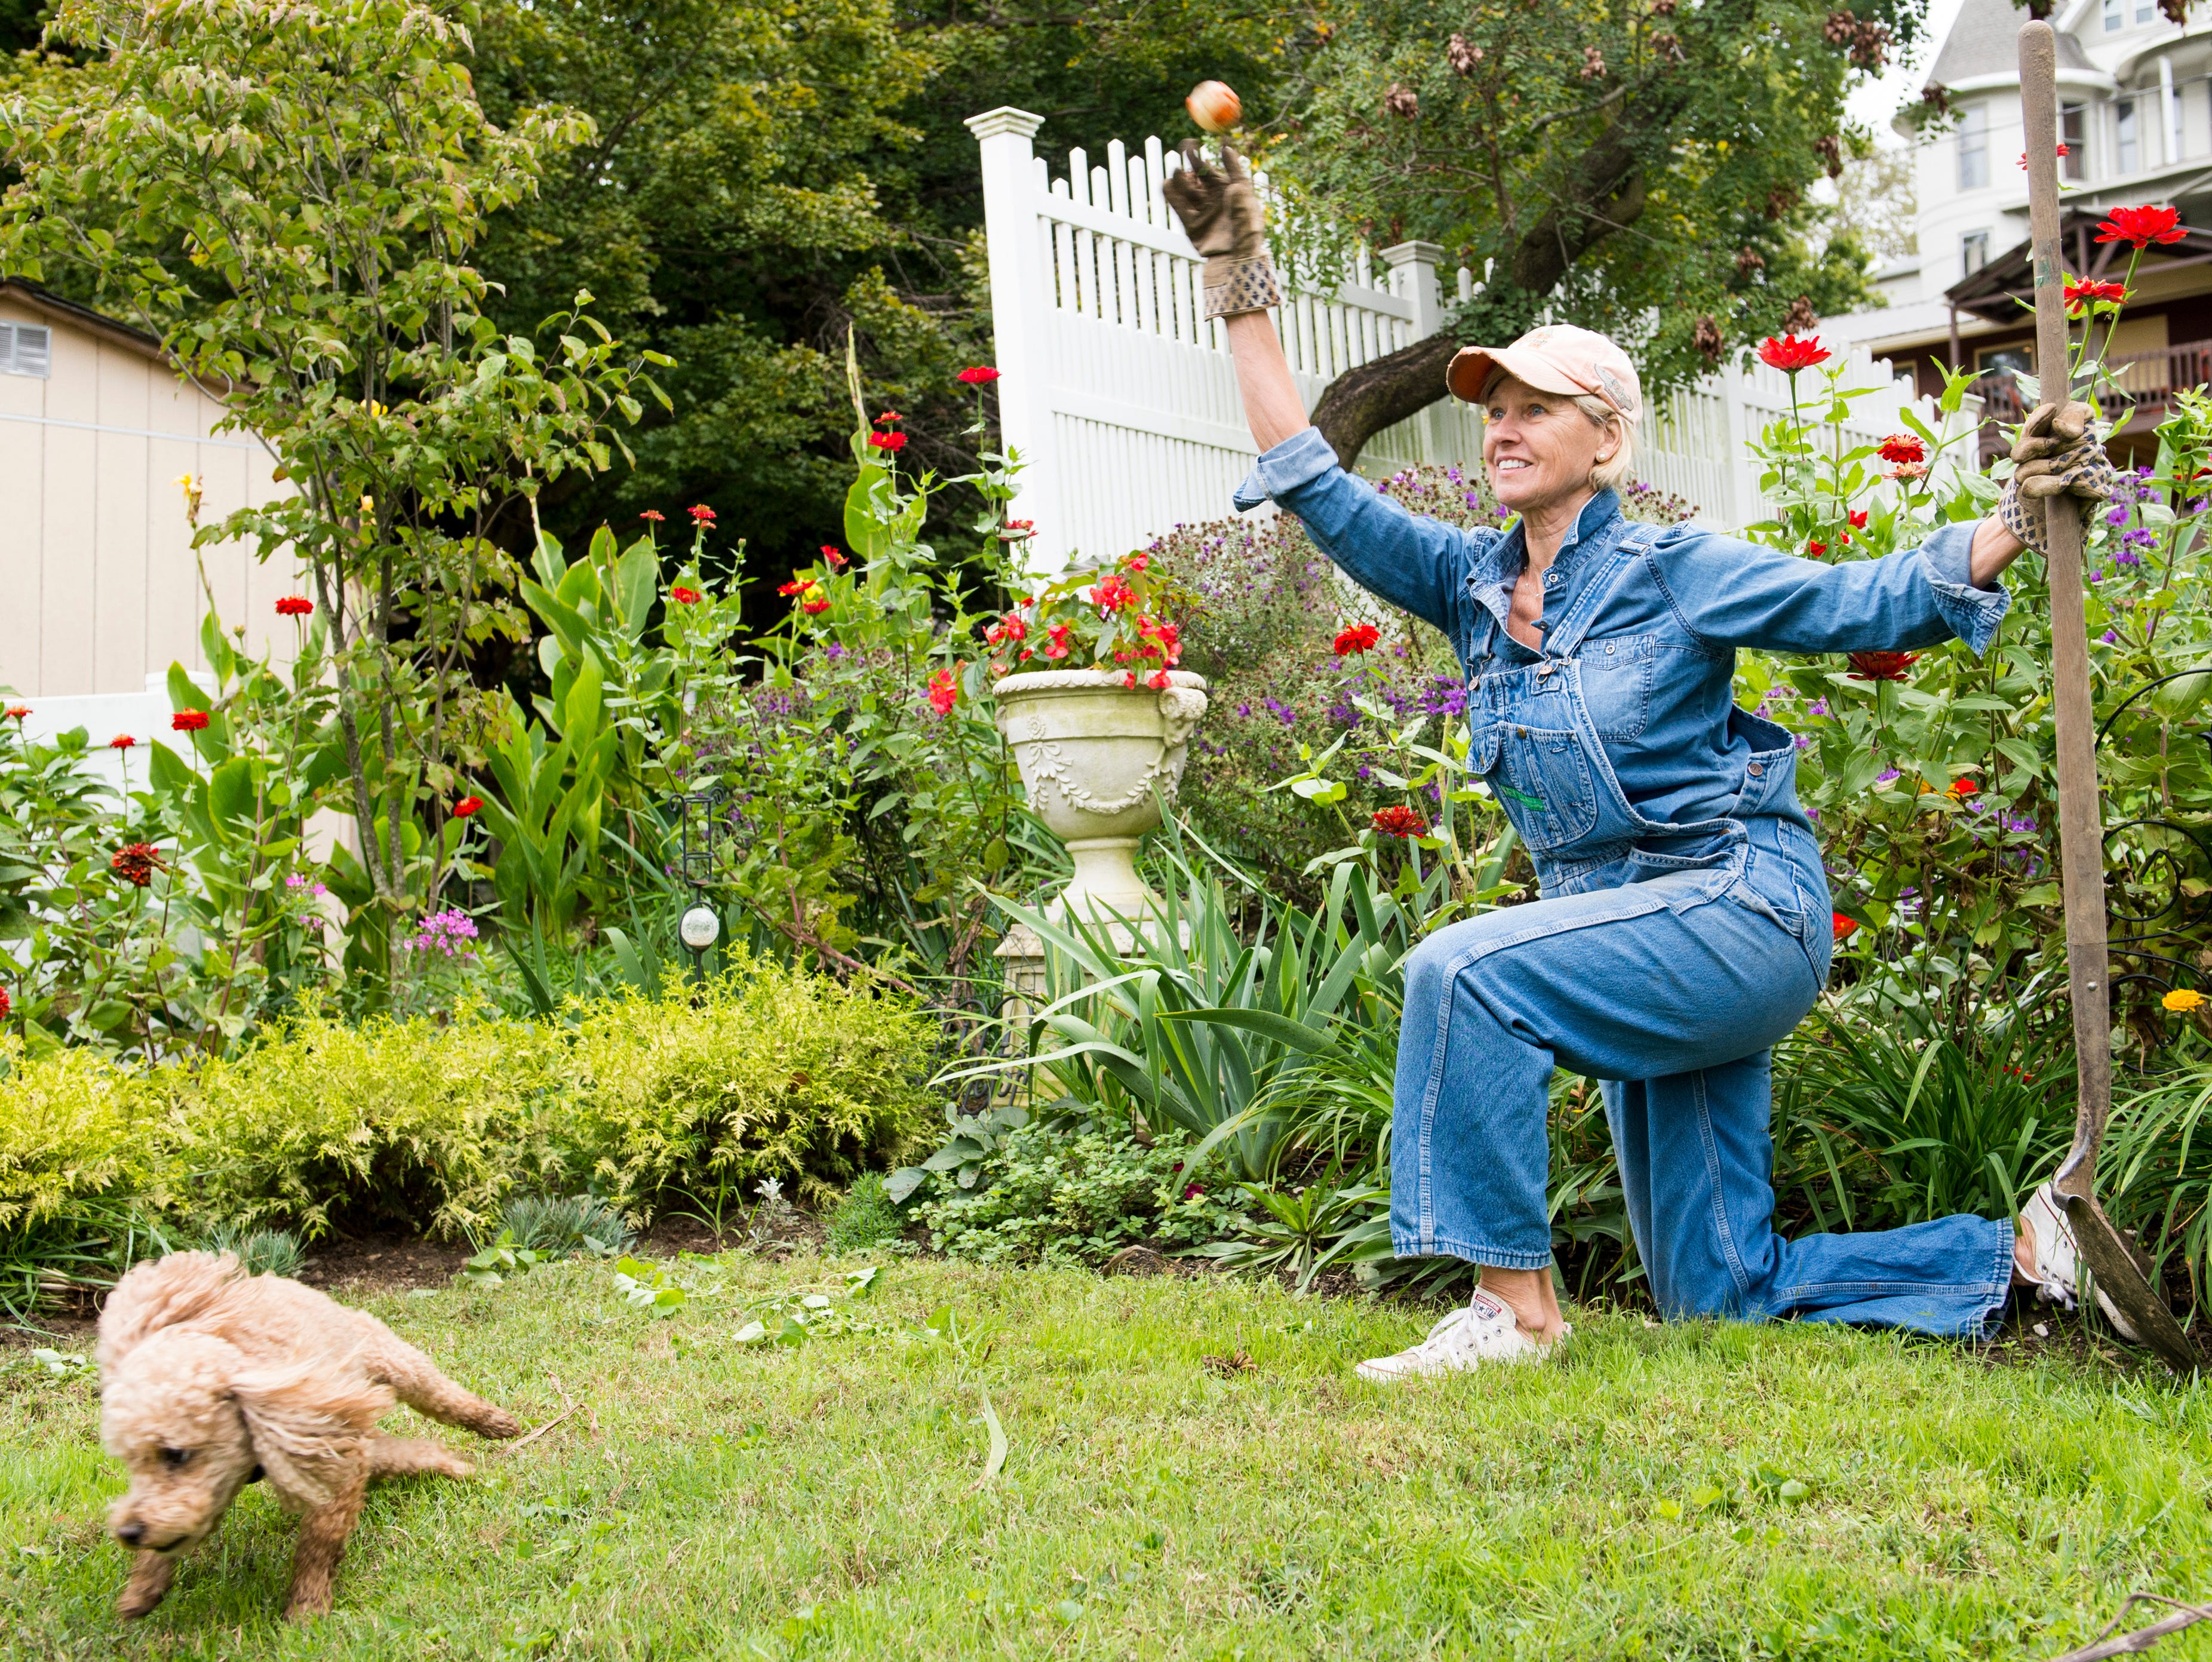 Marietta Peckenpaugh takes a break from putting the garden to bed to play fetch with her french poodle, Bailey, at her home off Main Street in downtown Henderson Tuesday, Oct. 16, 2018.